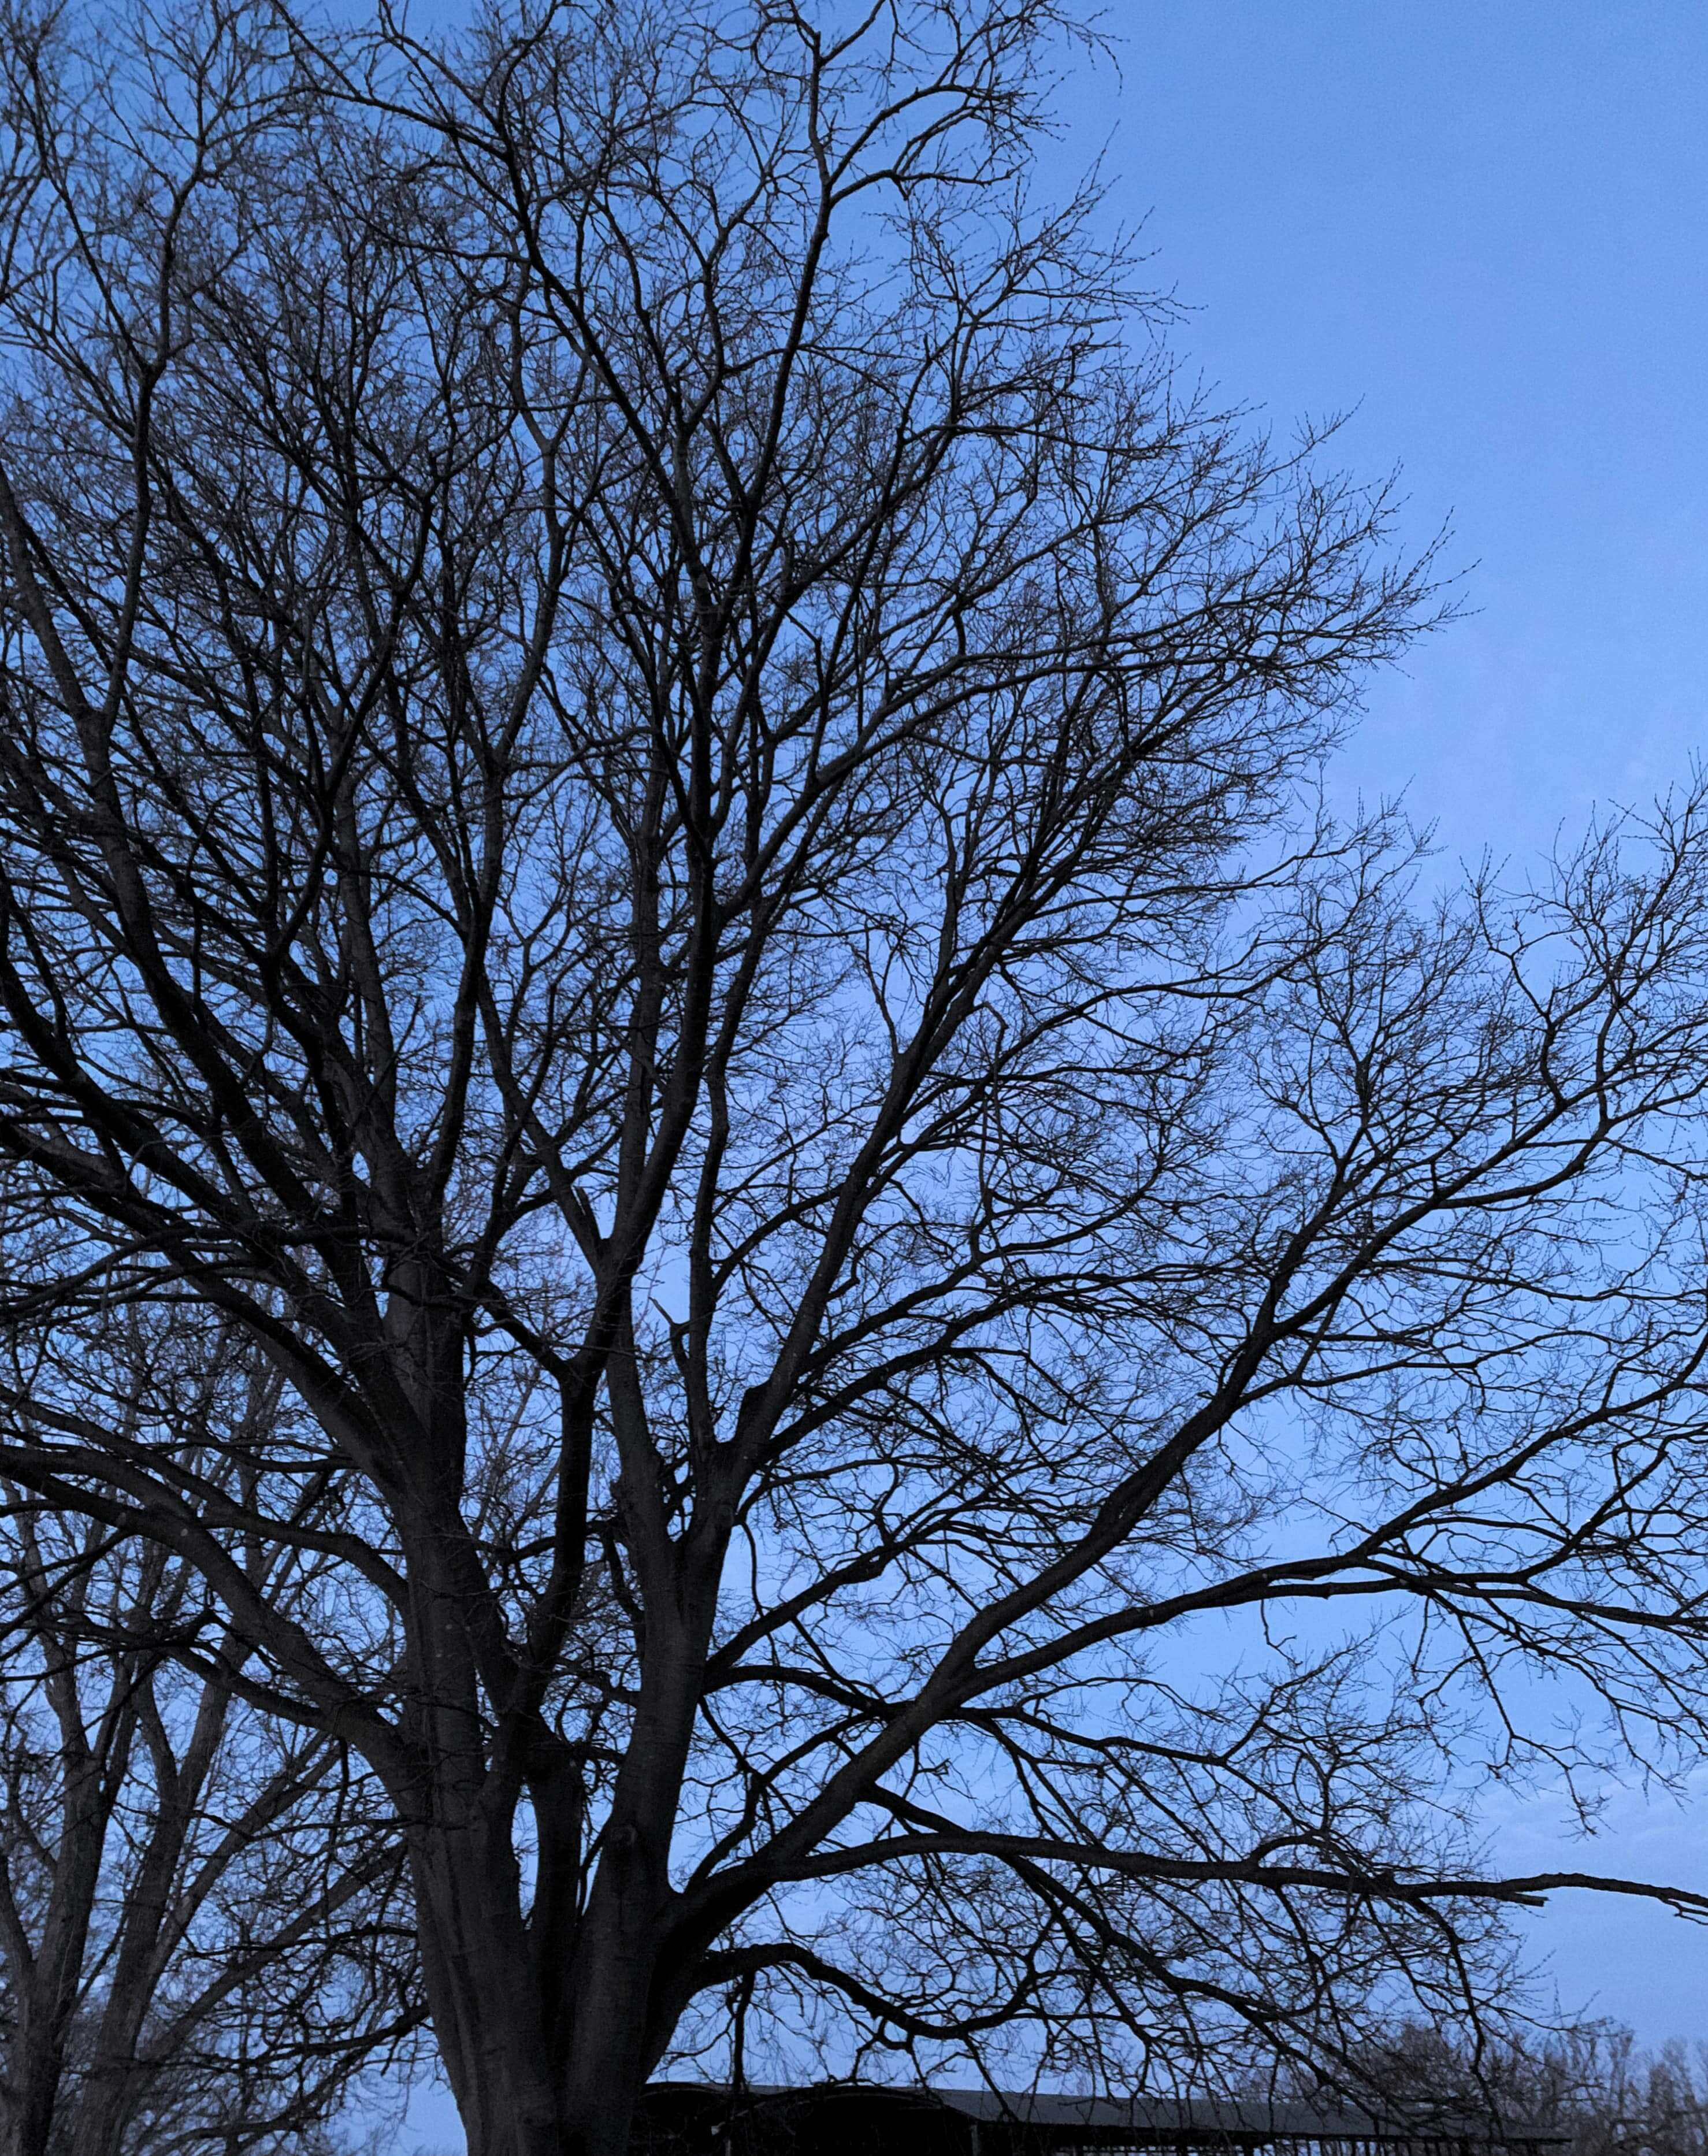 photo of a tree without leaves, its branches against a blue sky